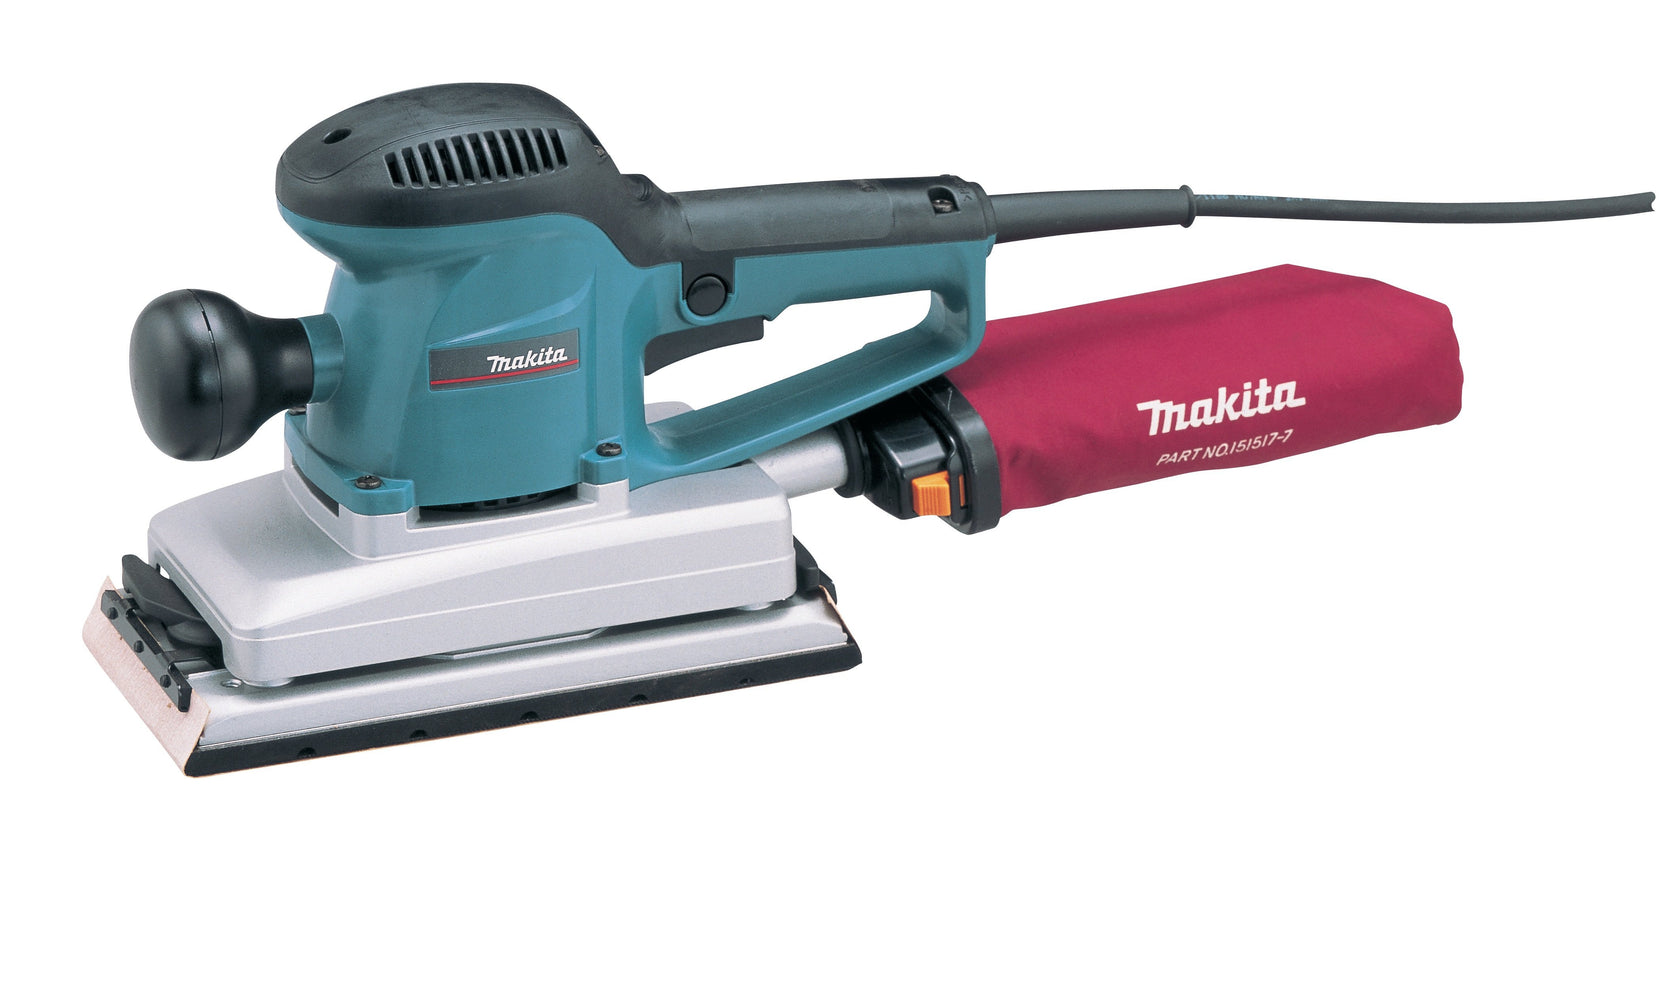 Makita 1/2 Sheet Finishing Sander BO4900(330WATT)